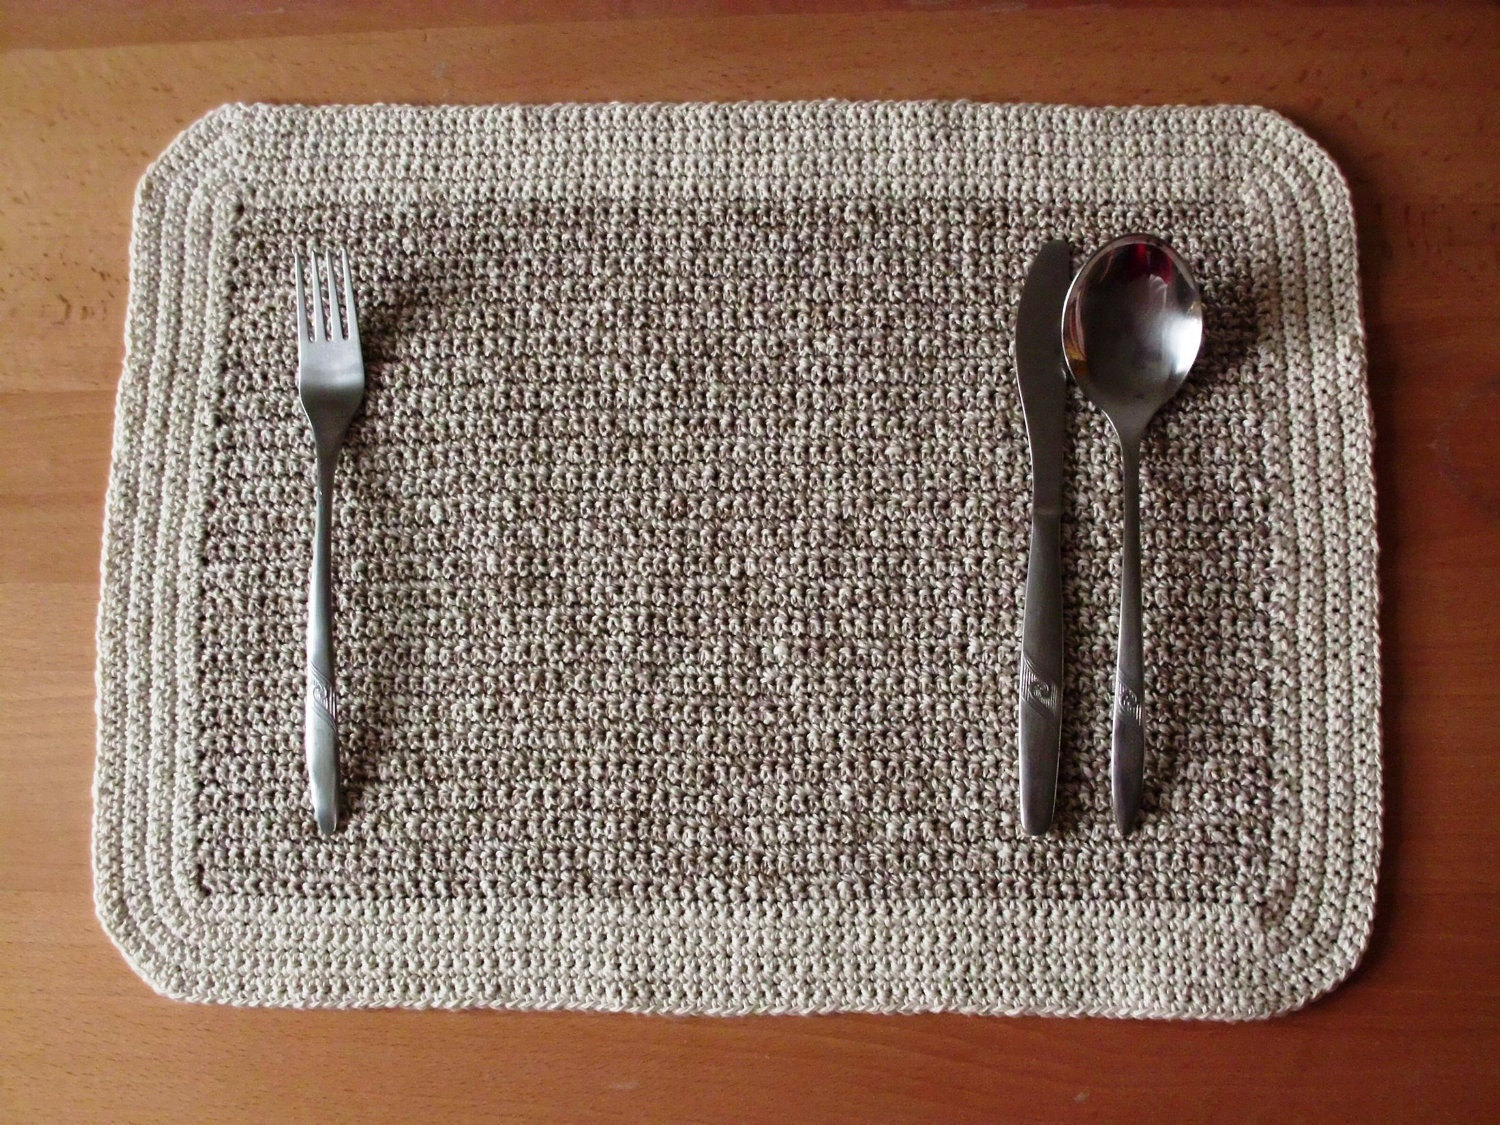 Crocheting Placemats : Crochet Placemats - useful home decor PATTERN PDF